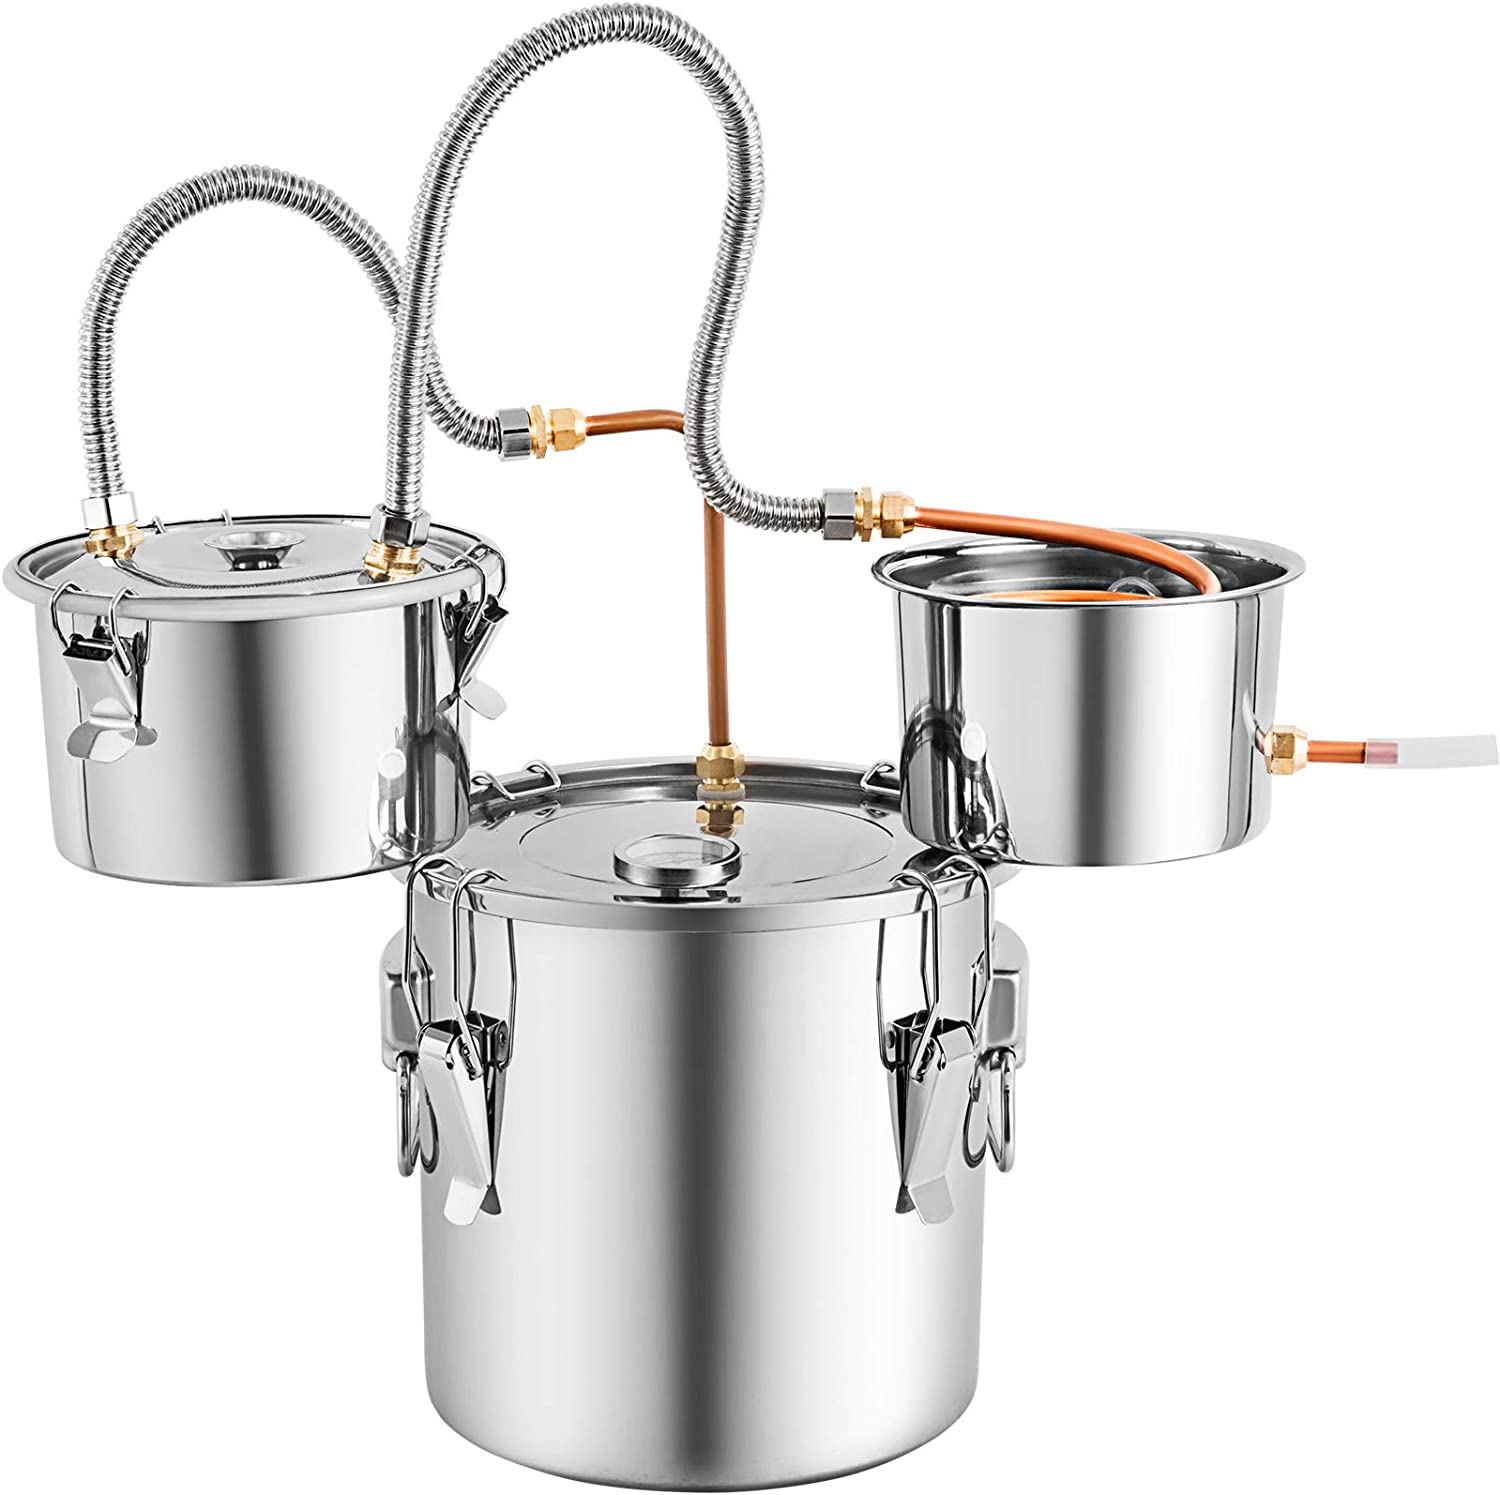 Marada Moonshine Still Water Alcohol Distiller 5 Gal with 3 Pots DIY Whiskey Wine Brandy Still Stainless Steel with Copper Tube Home Brew Wine Making Kit with Thumper Keg